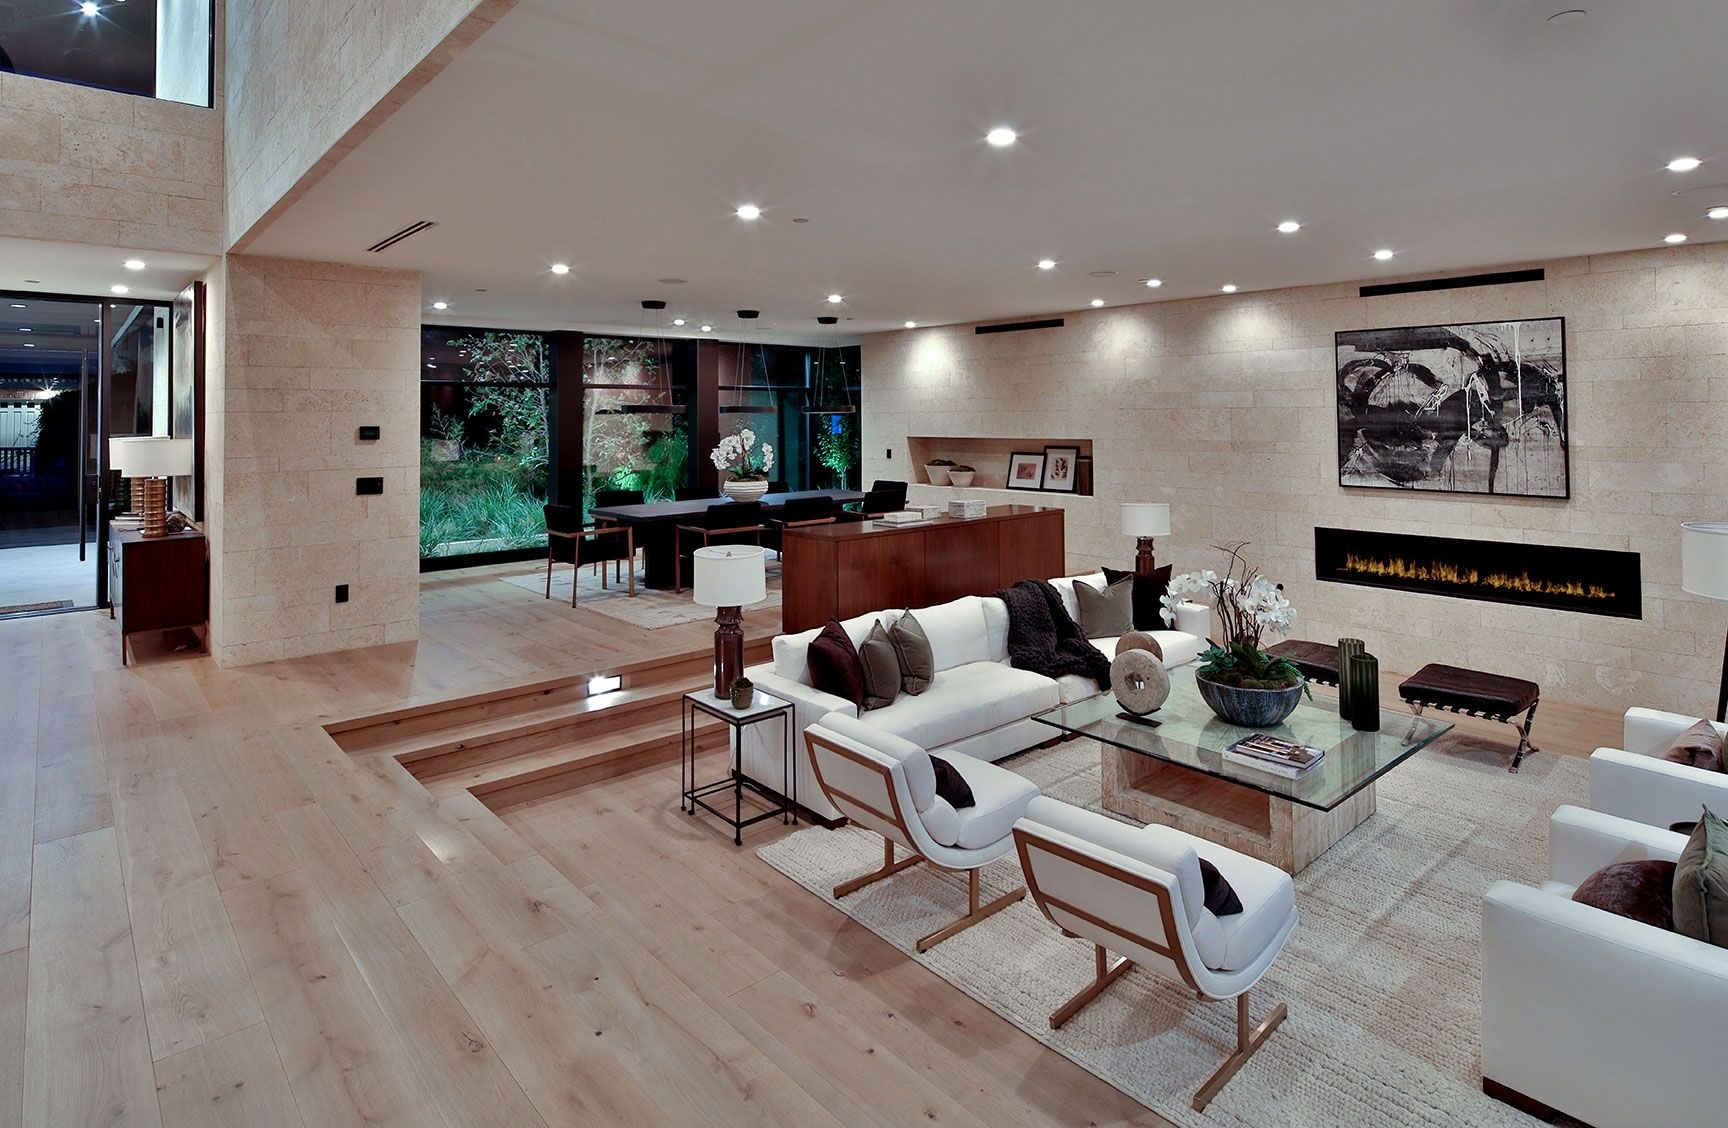 Sunken Living Room In California Luxury Home | Sunken Living 30+ Sunken Living Room Ideas